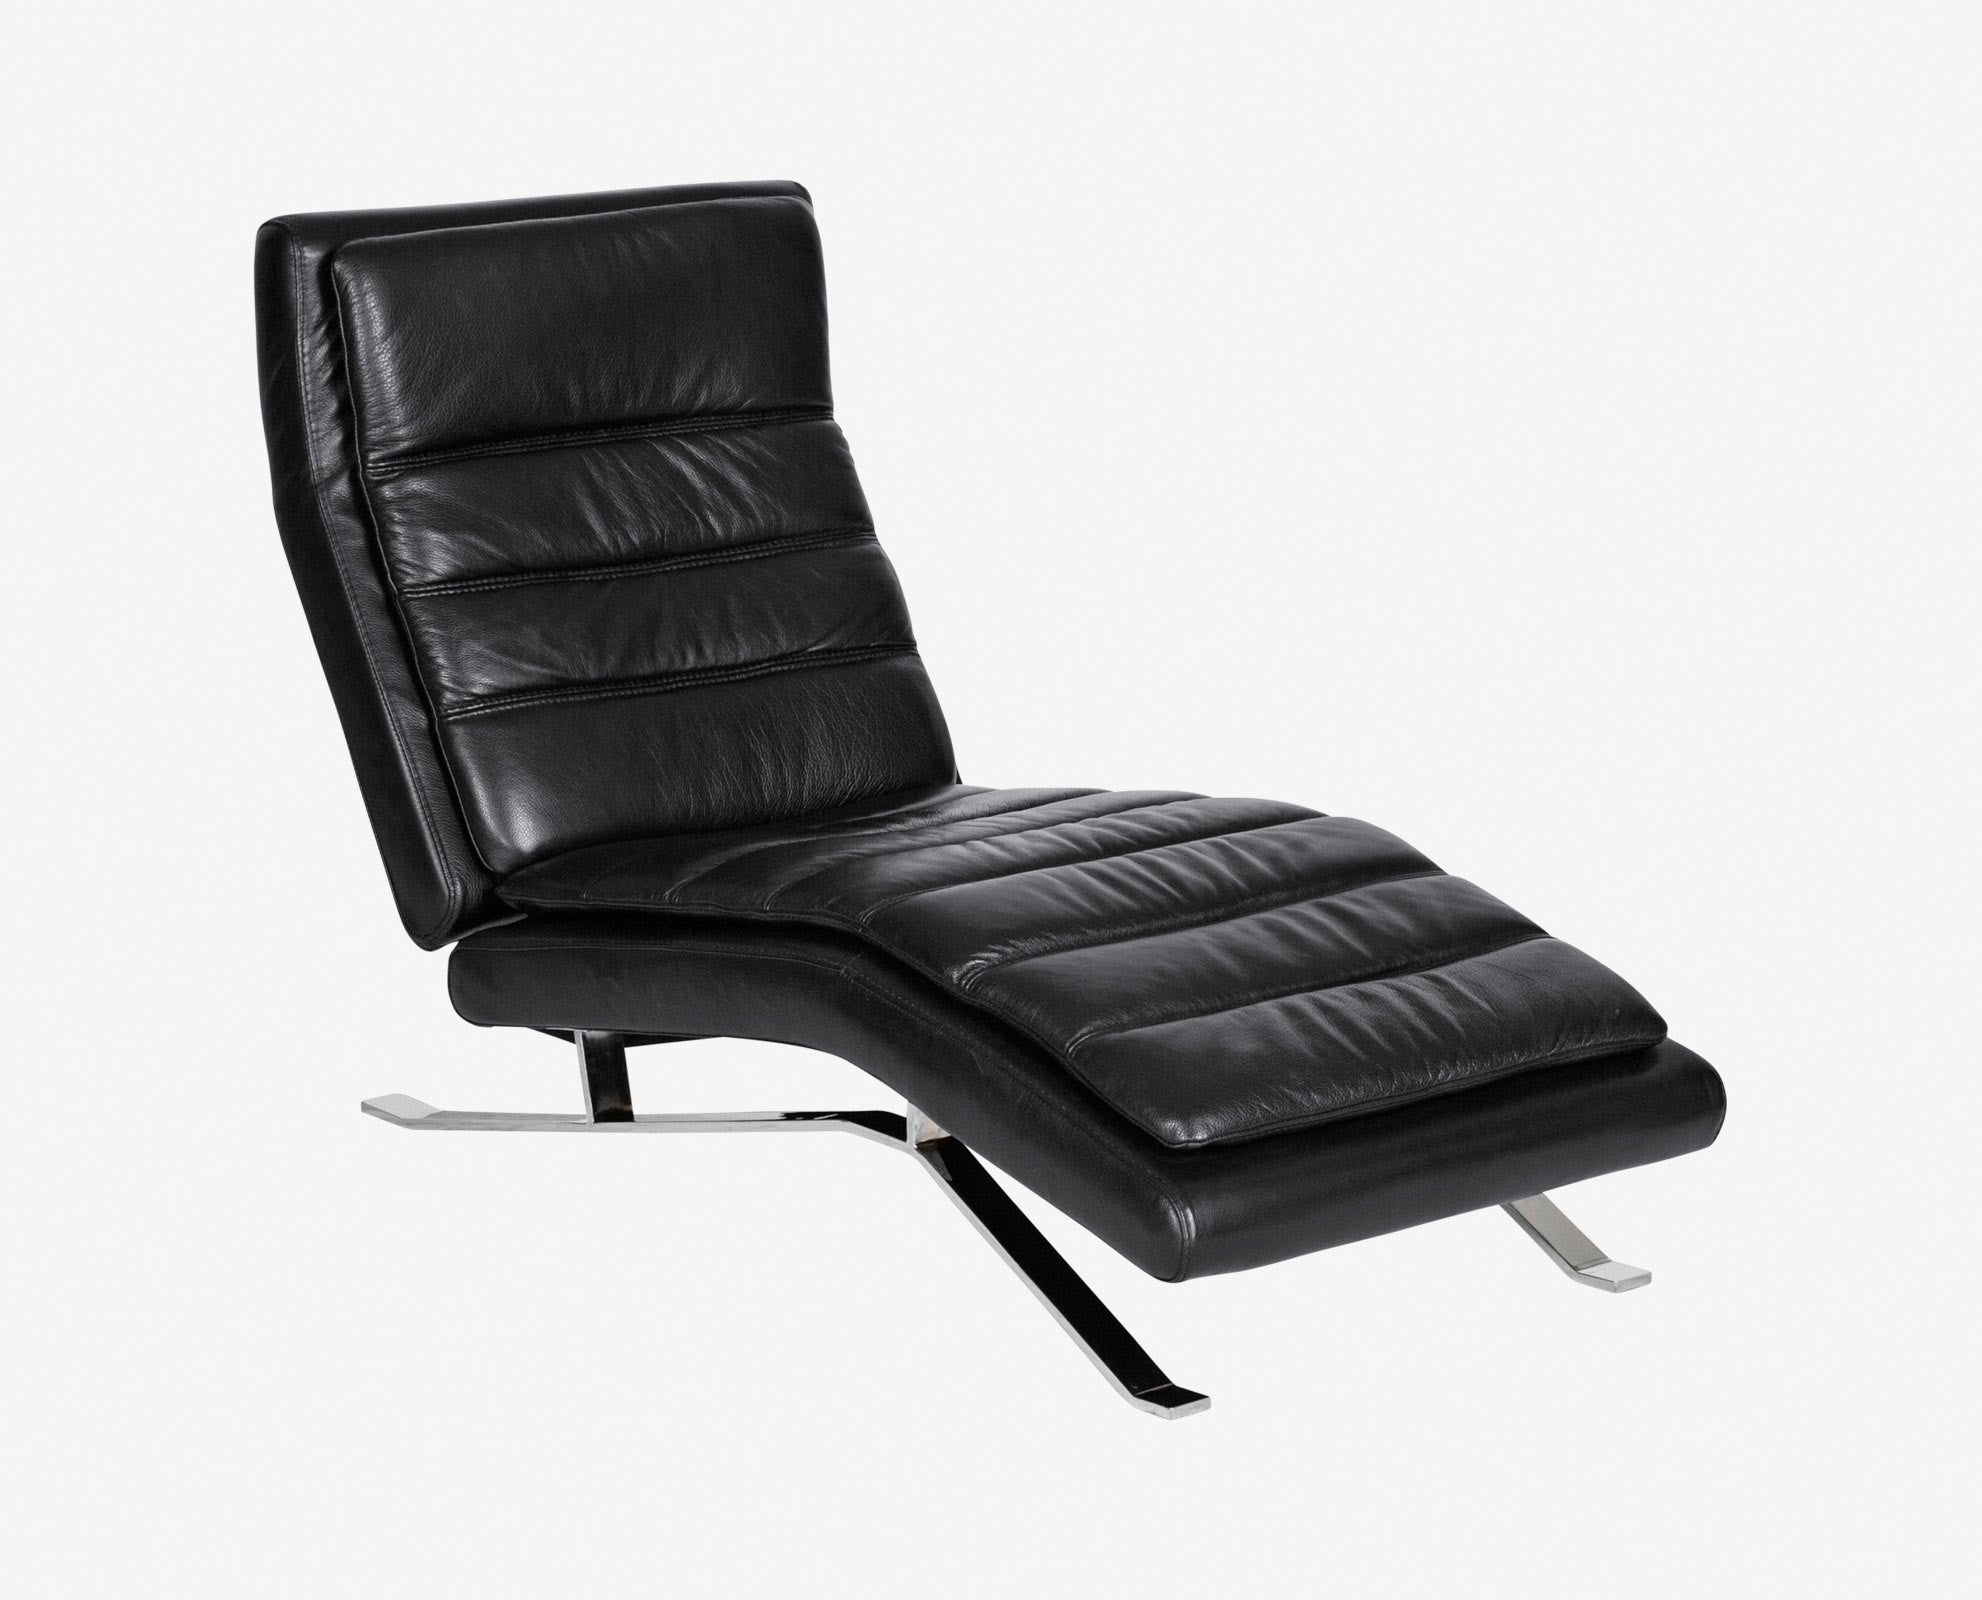 Nagalis Leather Chaise Black : armless chaise - Sectionals, Sofas & Couches